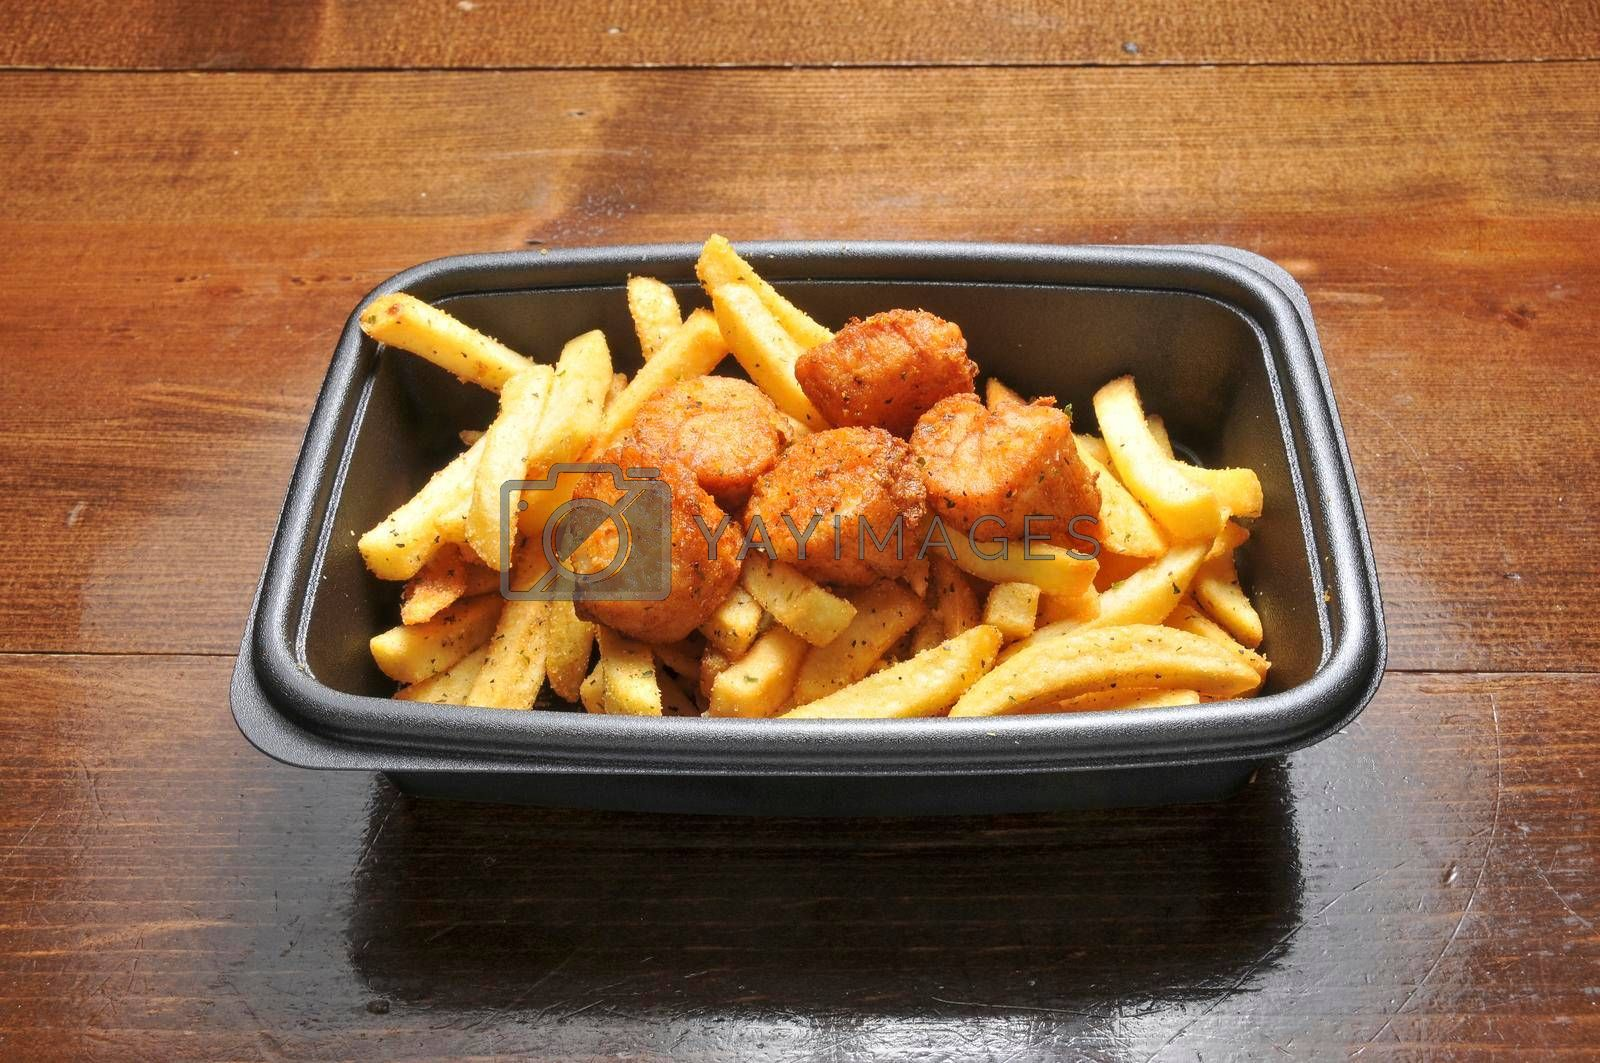 Delicious American cuisine known as fried scallops and french fries